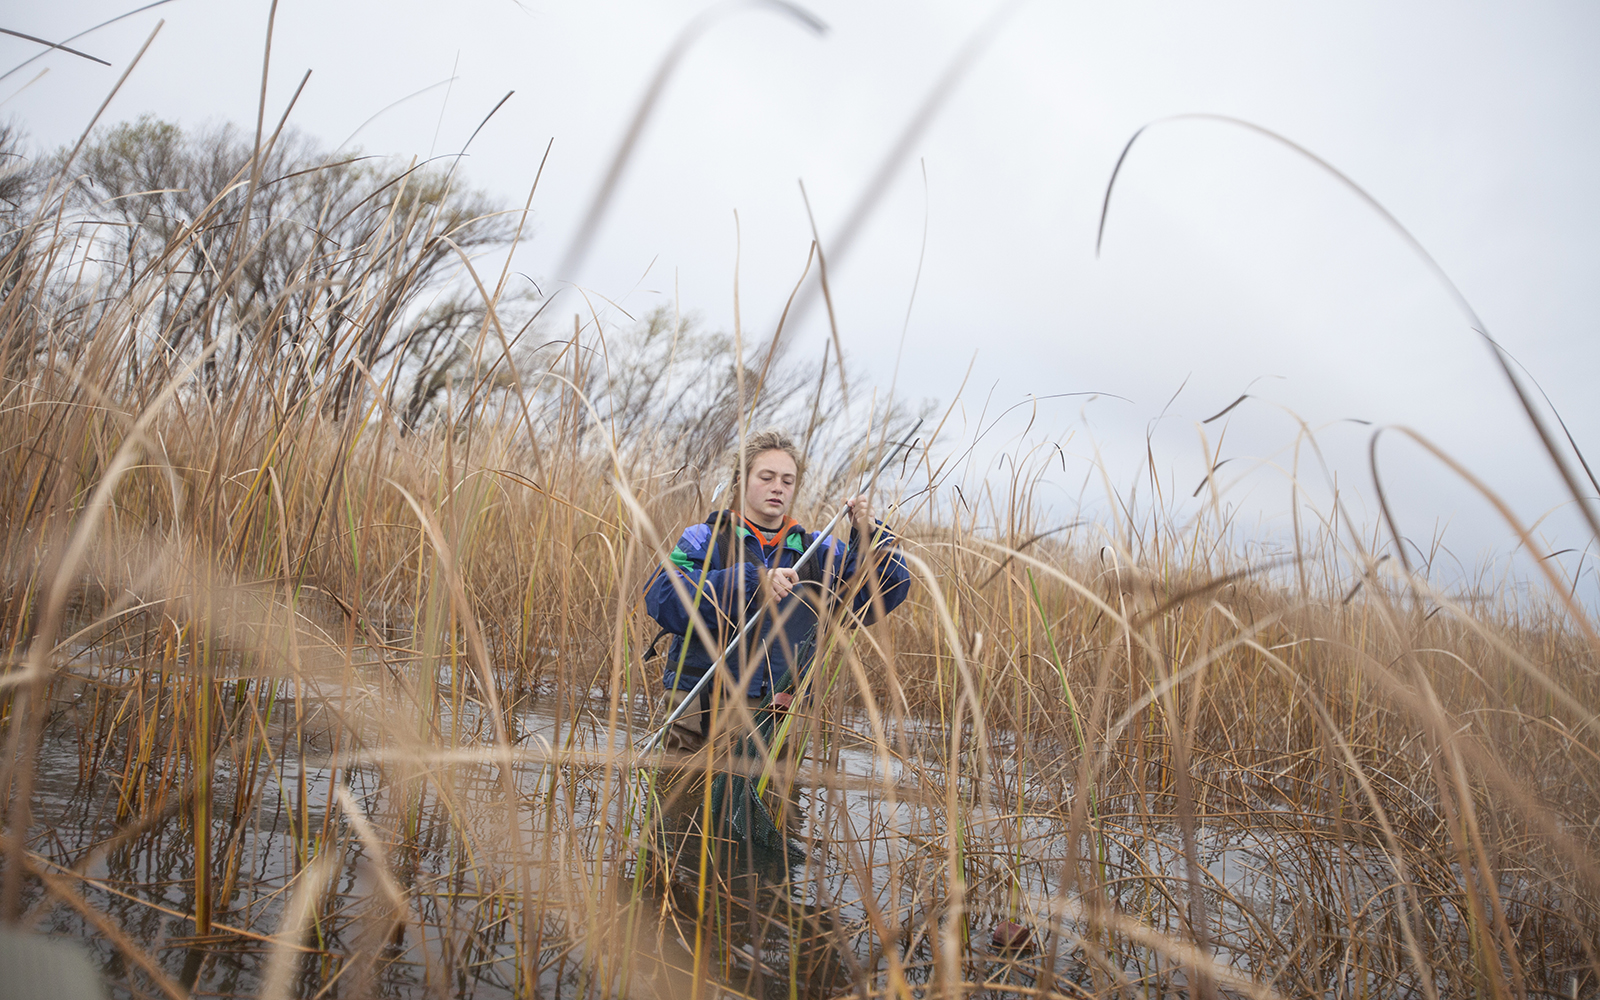 Northland College student in Lake Superior coastal wetland for field research project.